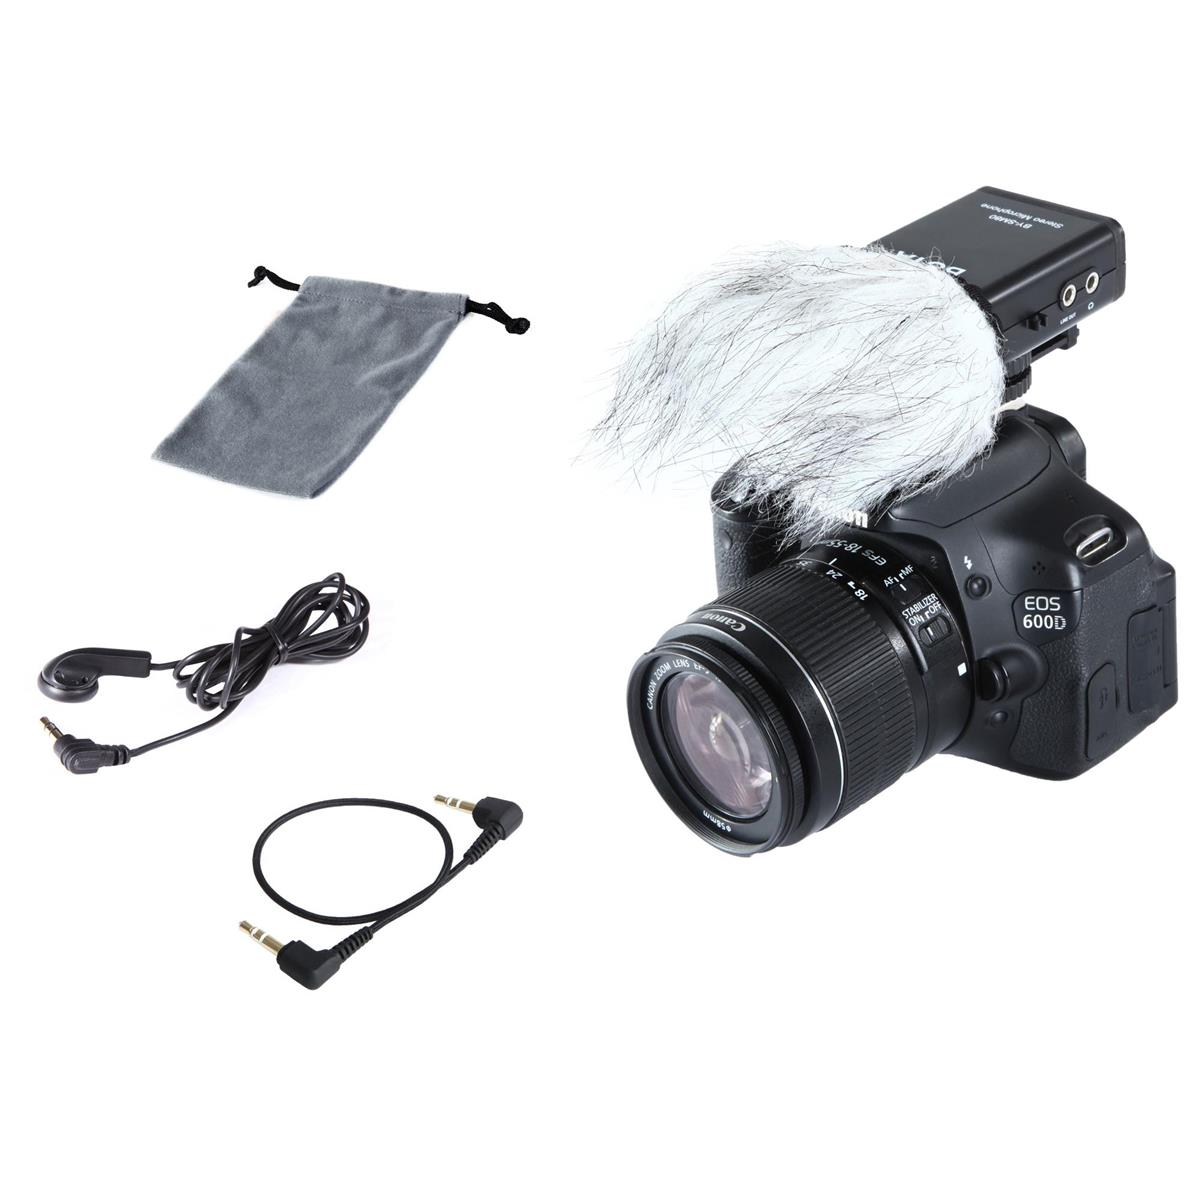 BOYA BY-SM80 Stereo Condenser Microphone for DSLR Camera, Video Camera, Audio Recorder